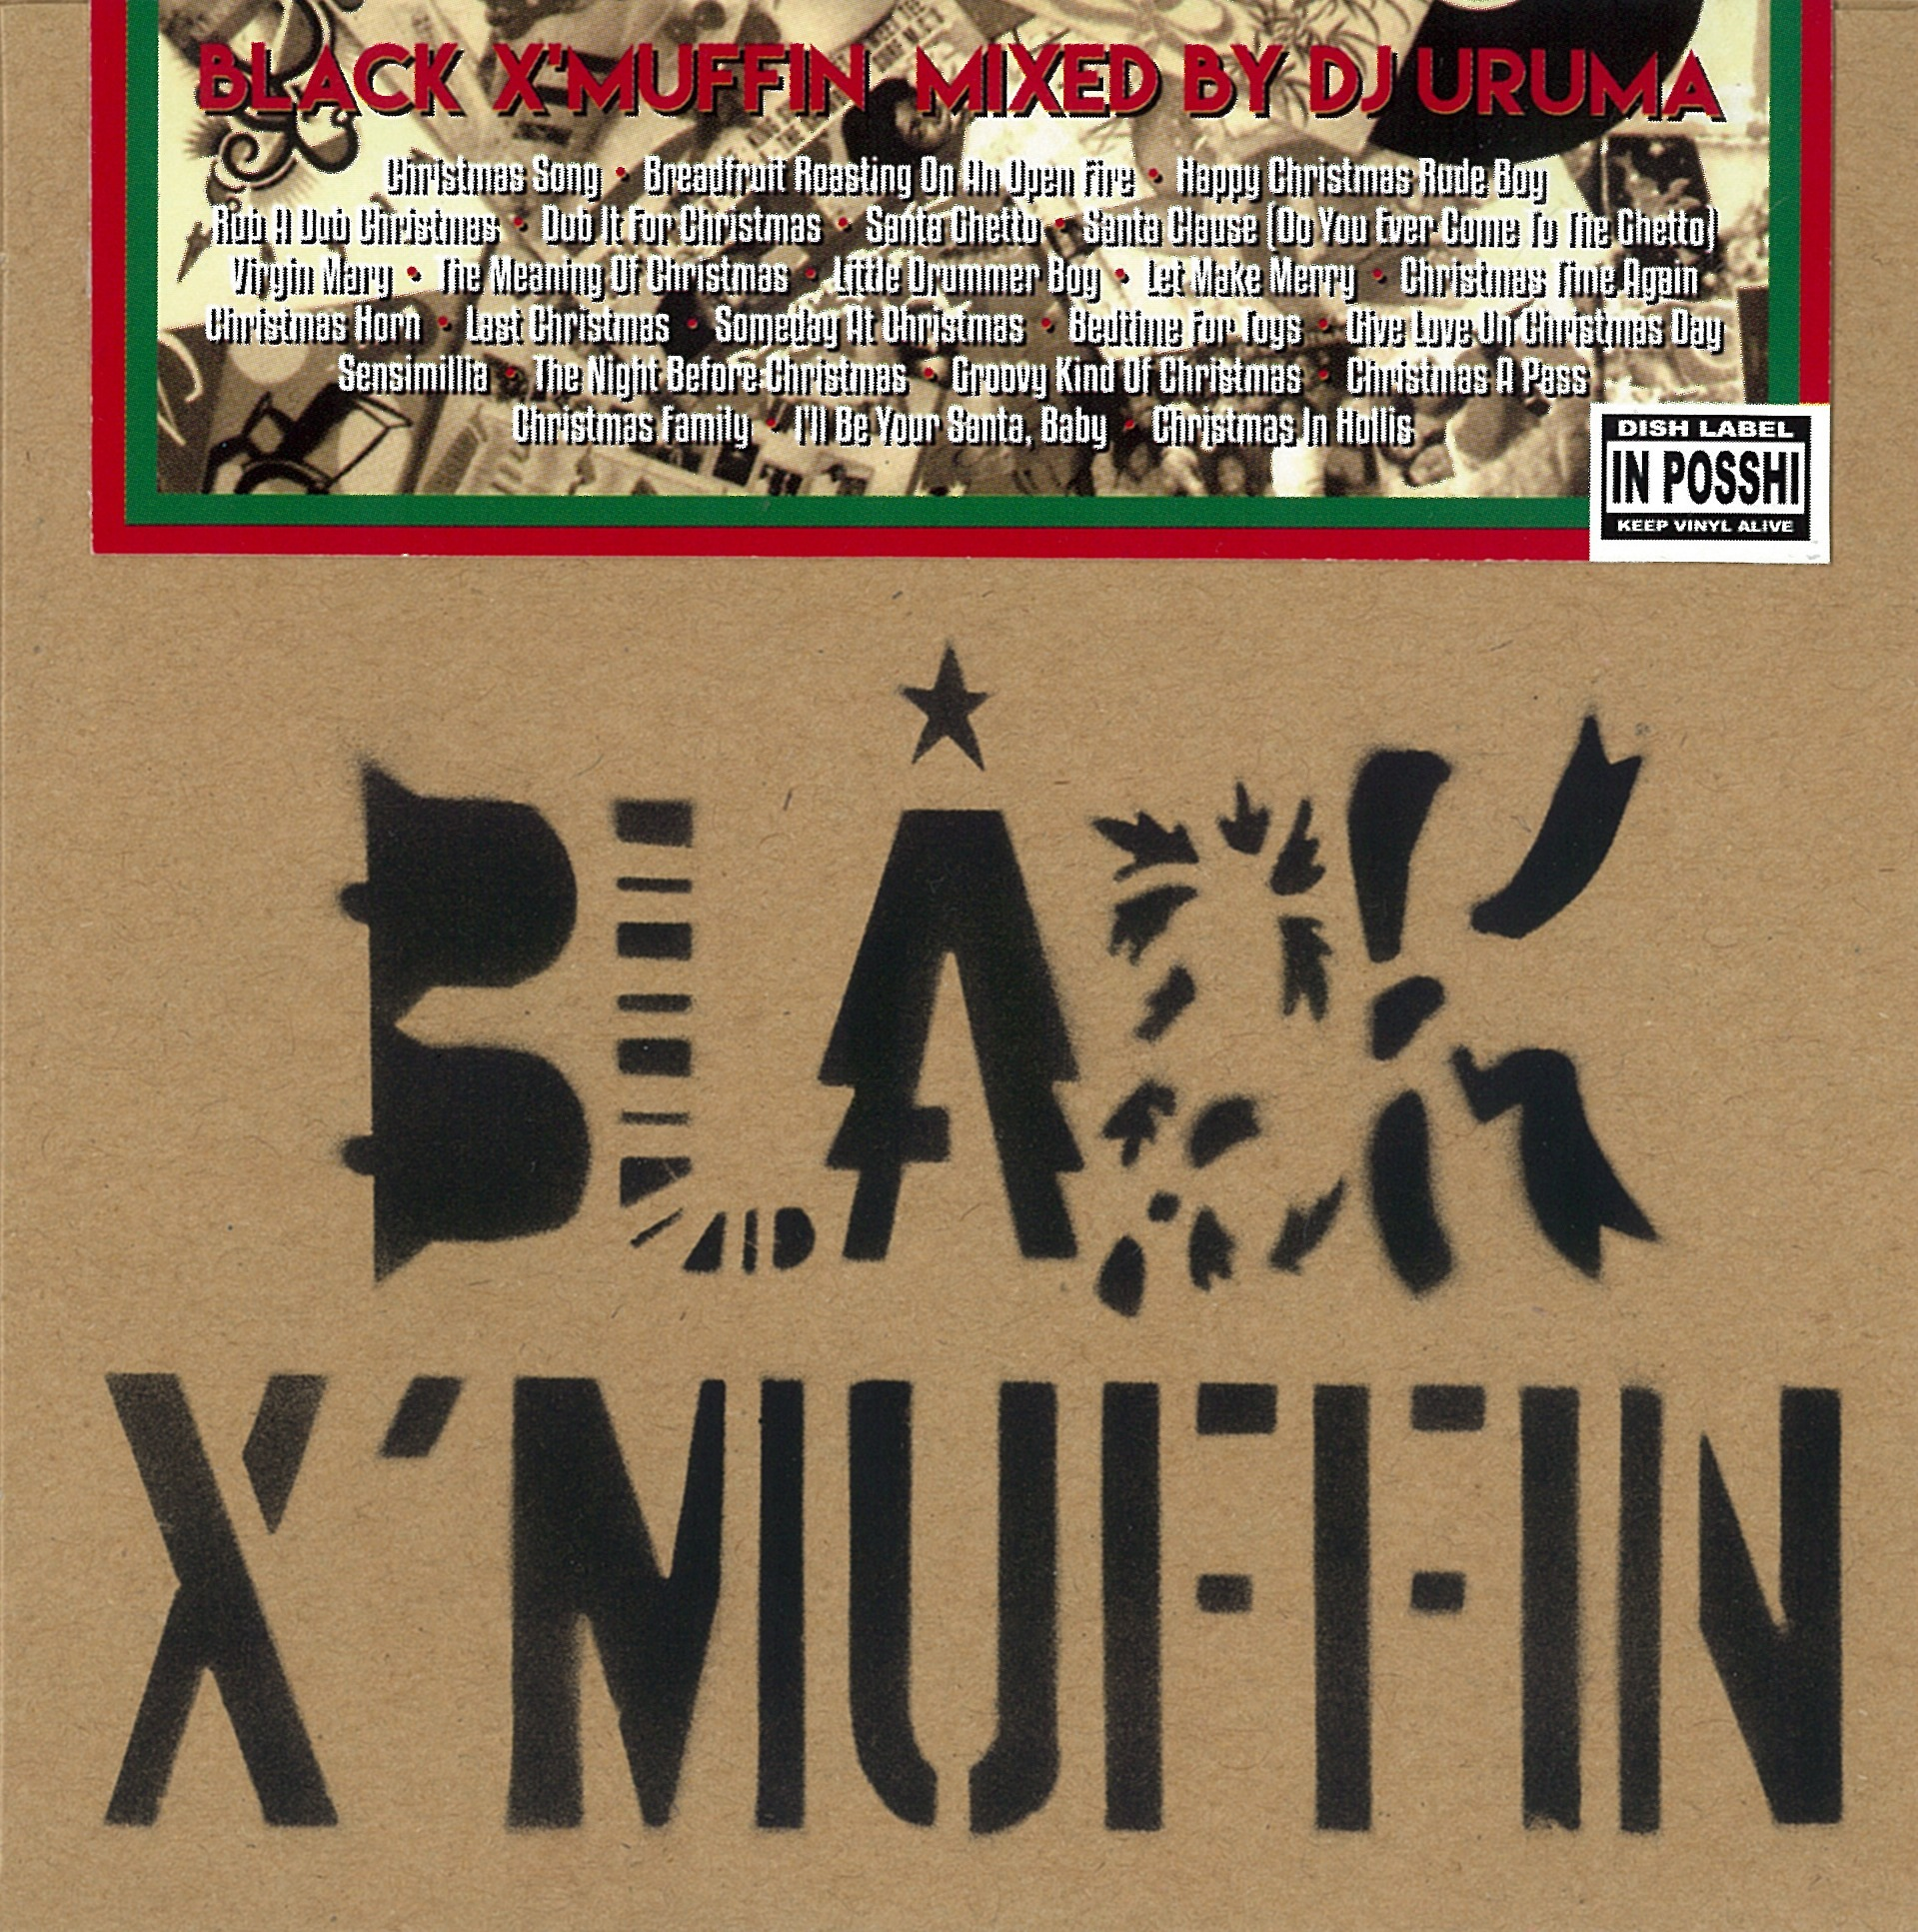 [MIX CD] DJ URUMA / BLACK X'MUFFIN